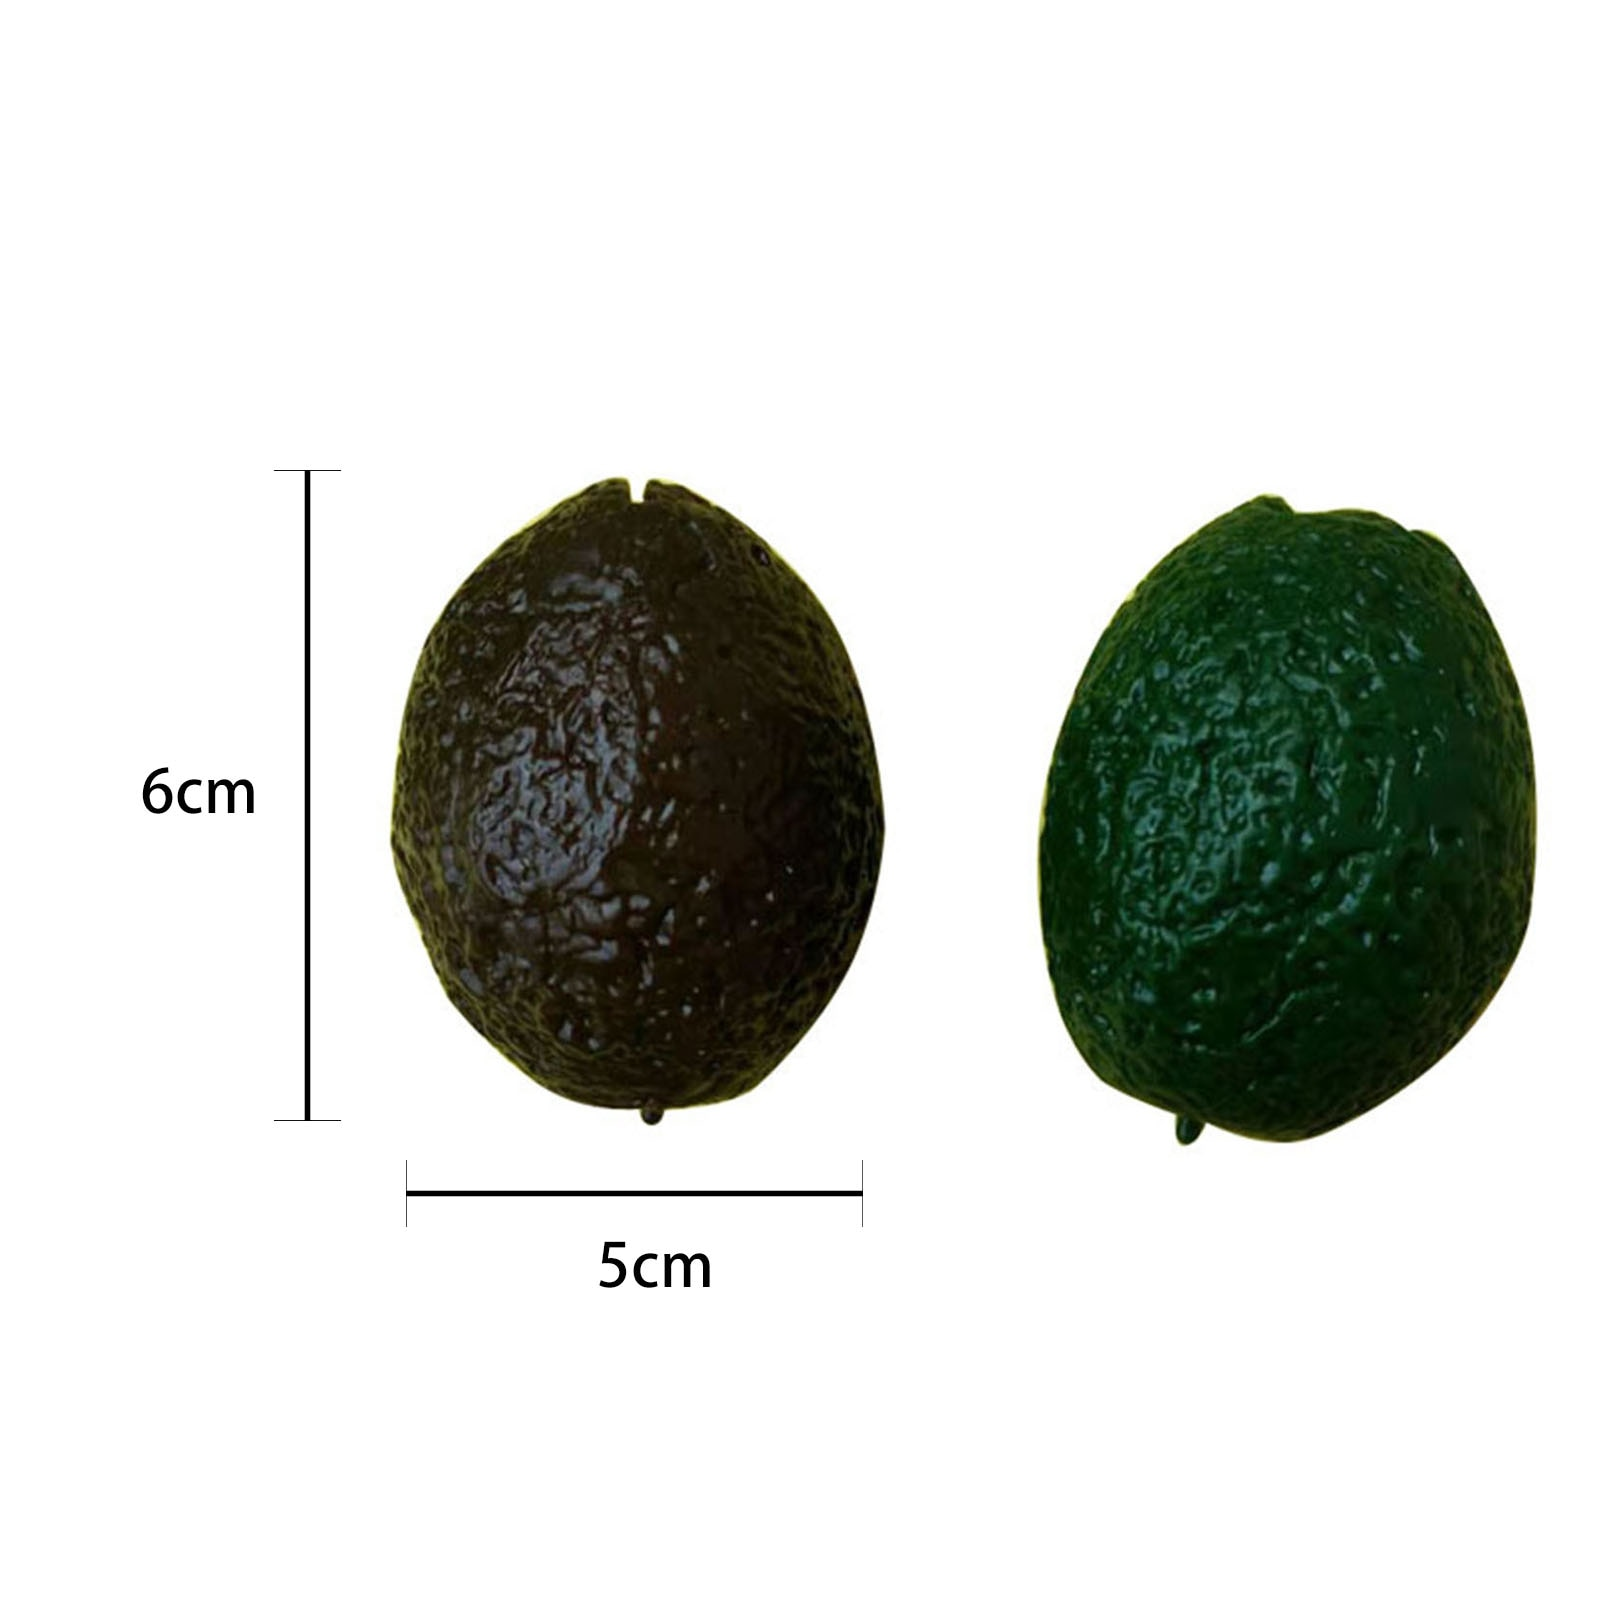 12PCS Novelty Stress Ball Avocado Pinch Toy Decompression Stress Relief Fun Toy High-quality Washing Resistance Fun Toy For Kids enlarge